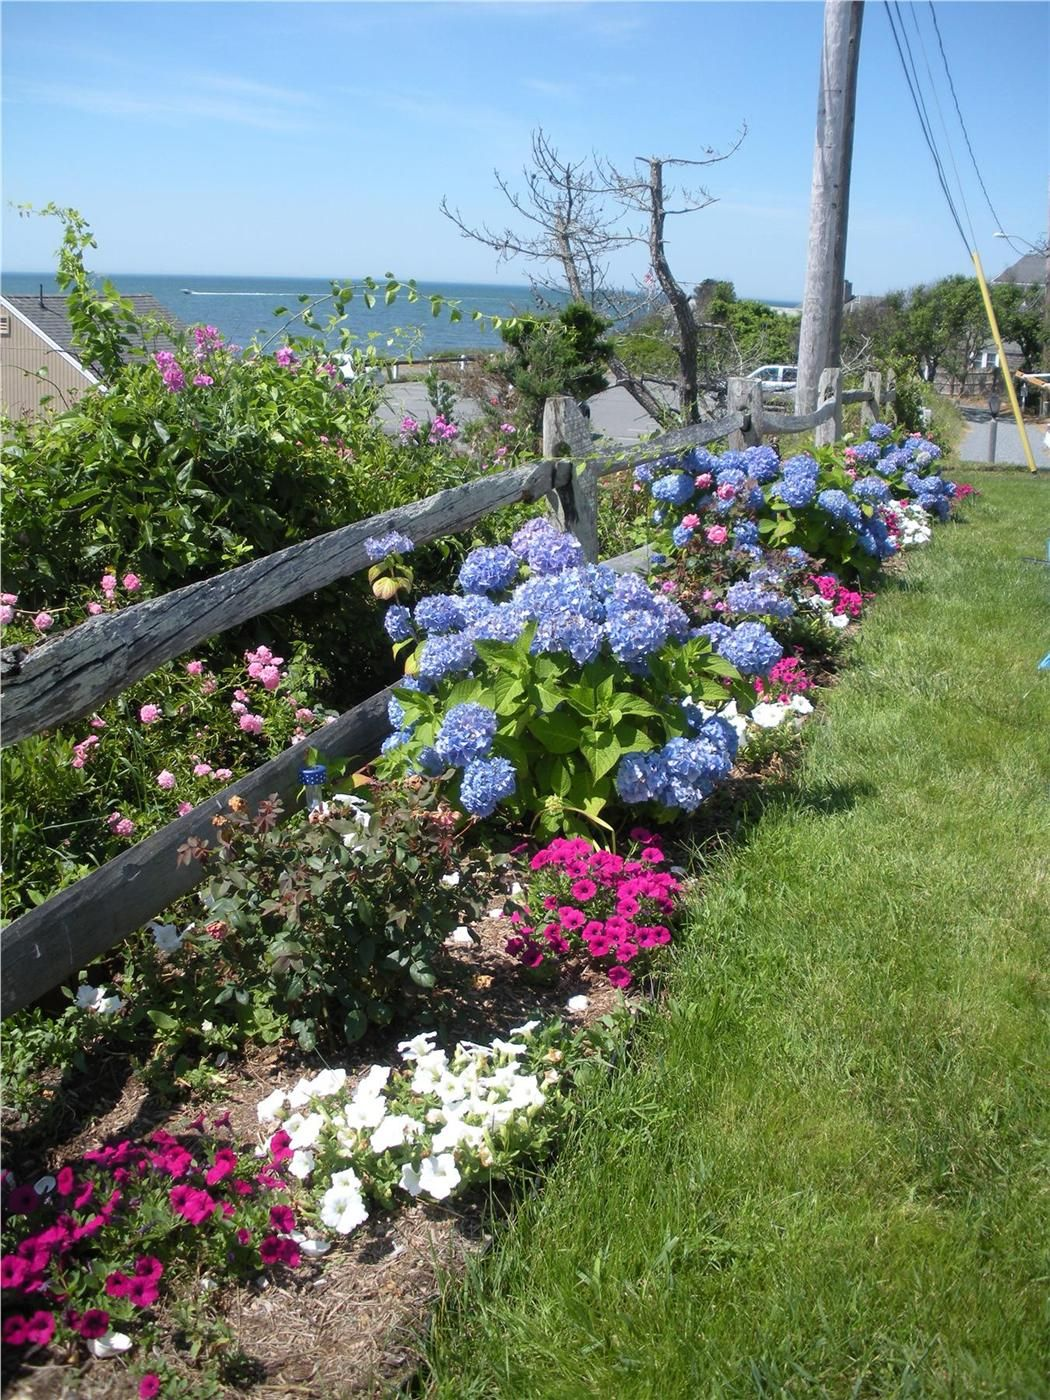 125 feet to Sea Street Beach, Dennis, Cape Cod | Coastal Gardens ...